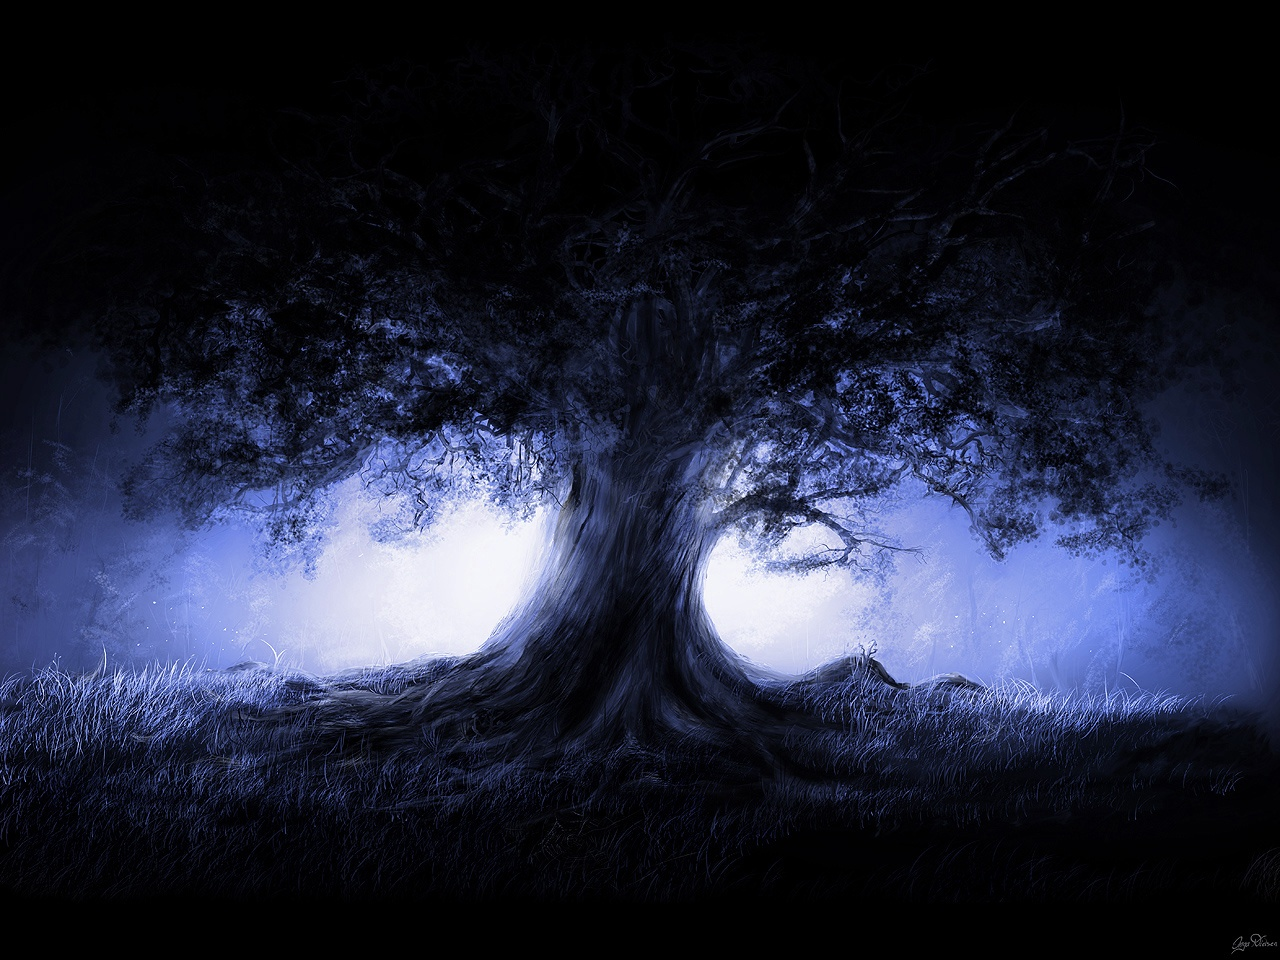 ((BREAKING NEWS)) Predator Priests and The Tree of Wickedness